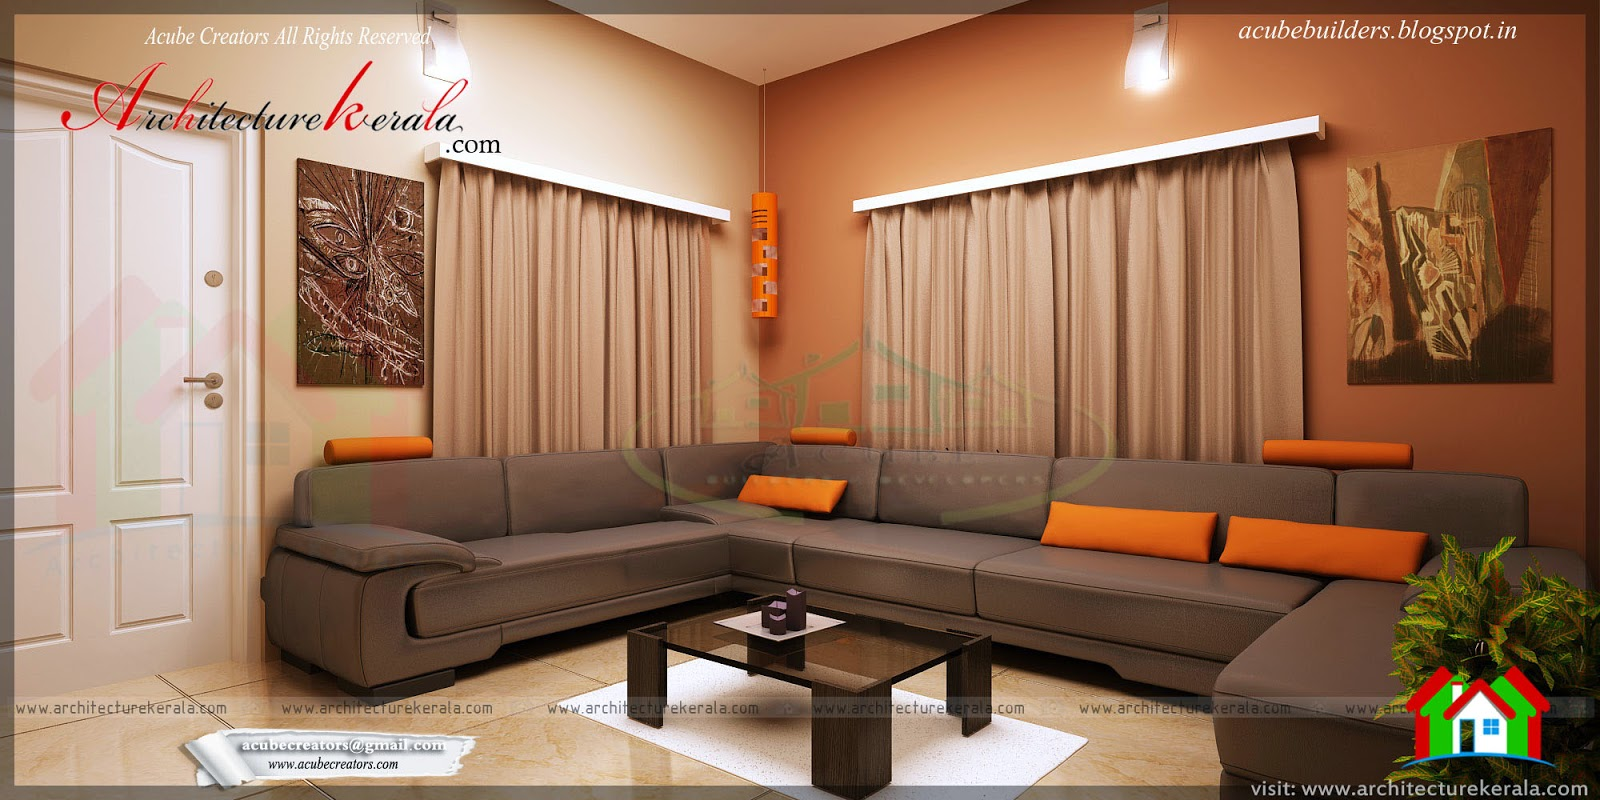 Drawing room interior design architecture kerala Photos of bedrooms interior design